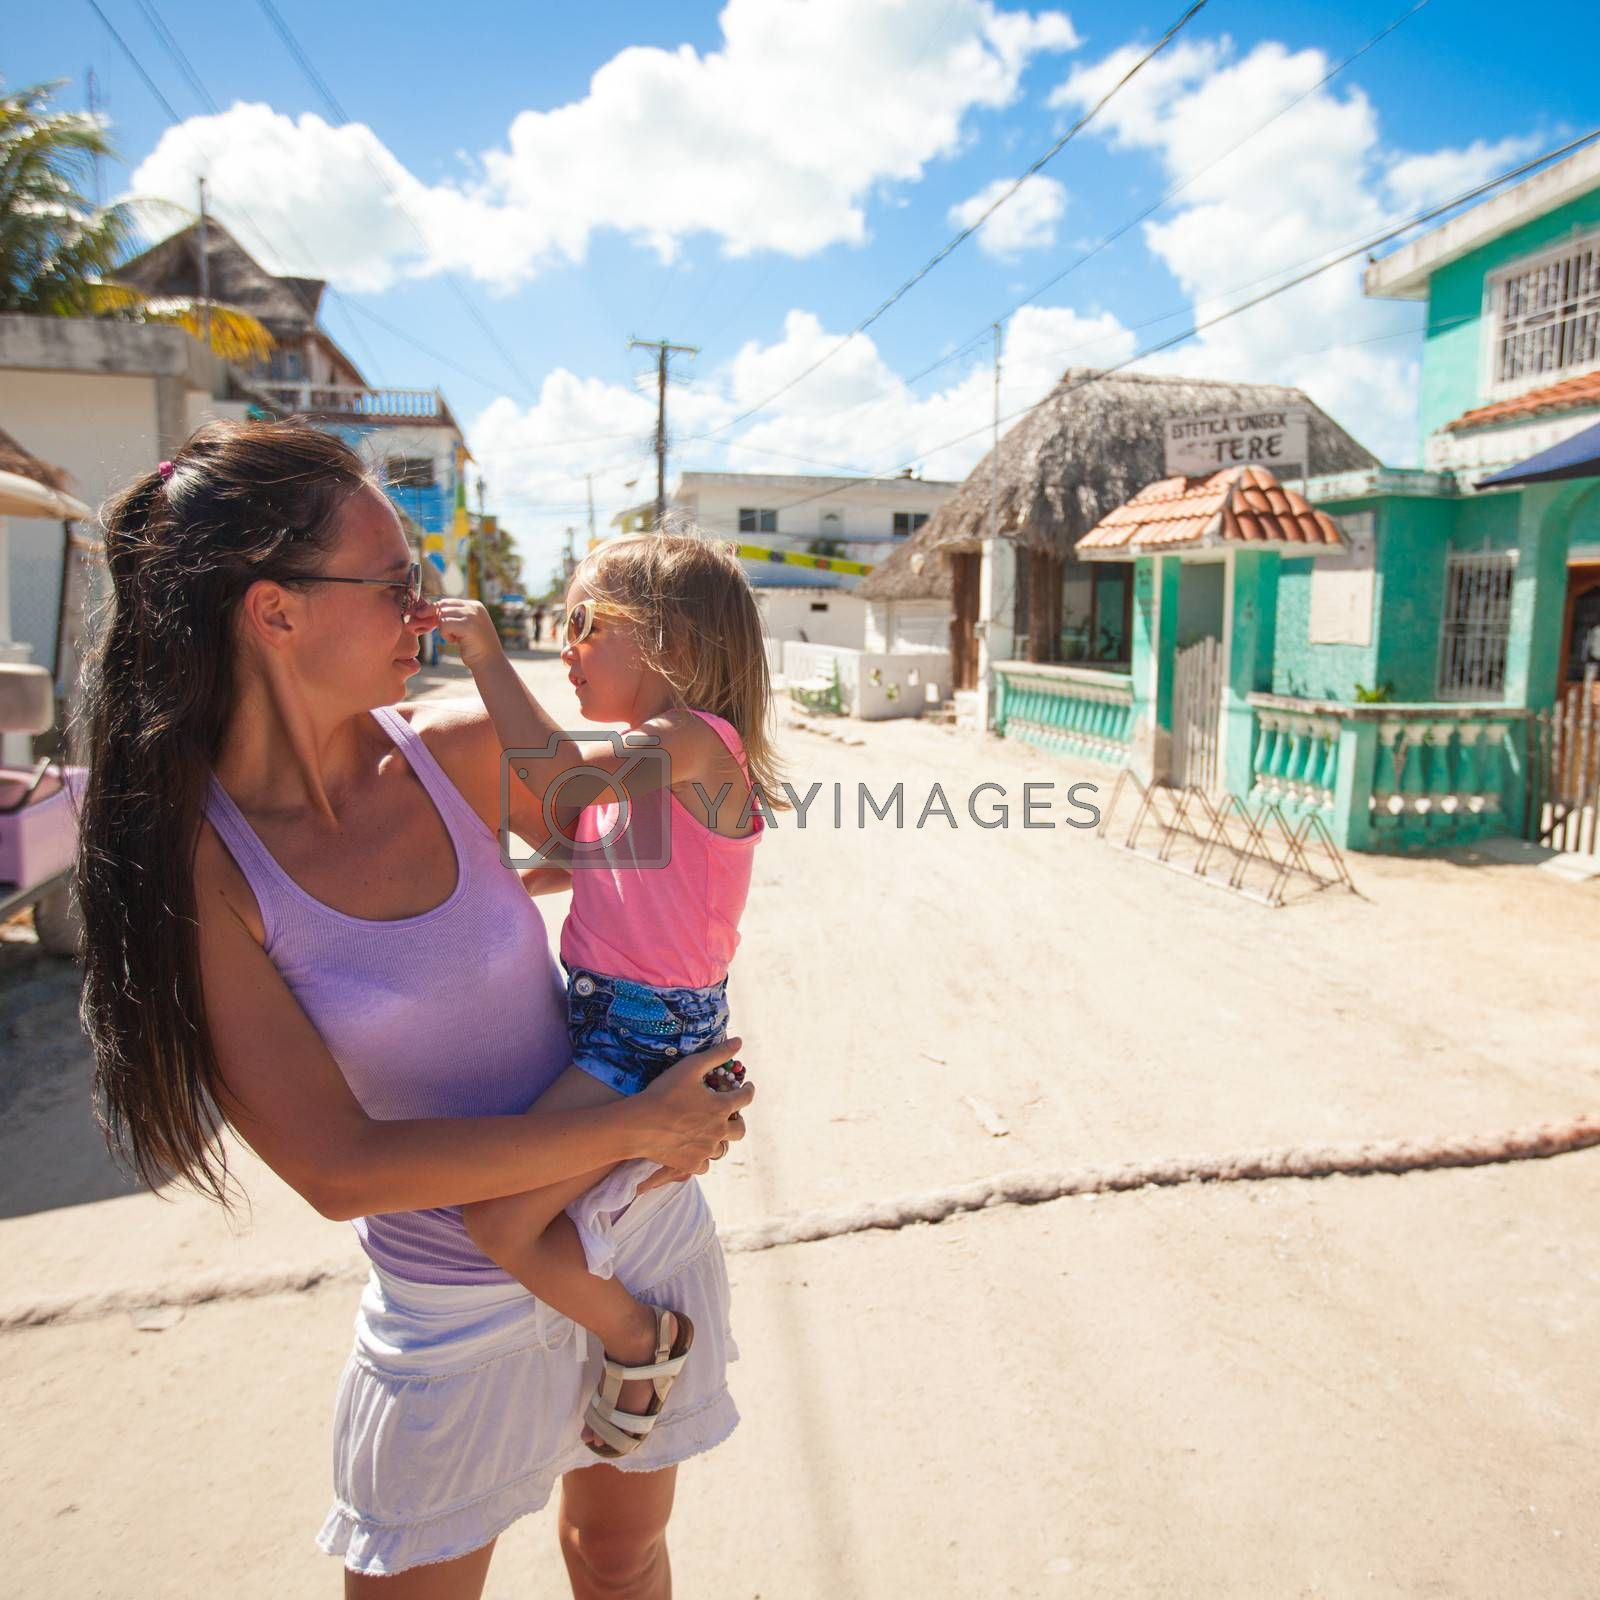 Young mother with her little girl walking on sandy street in exotic country